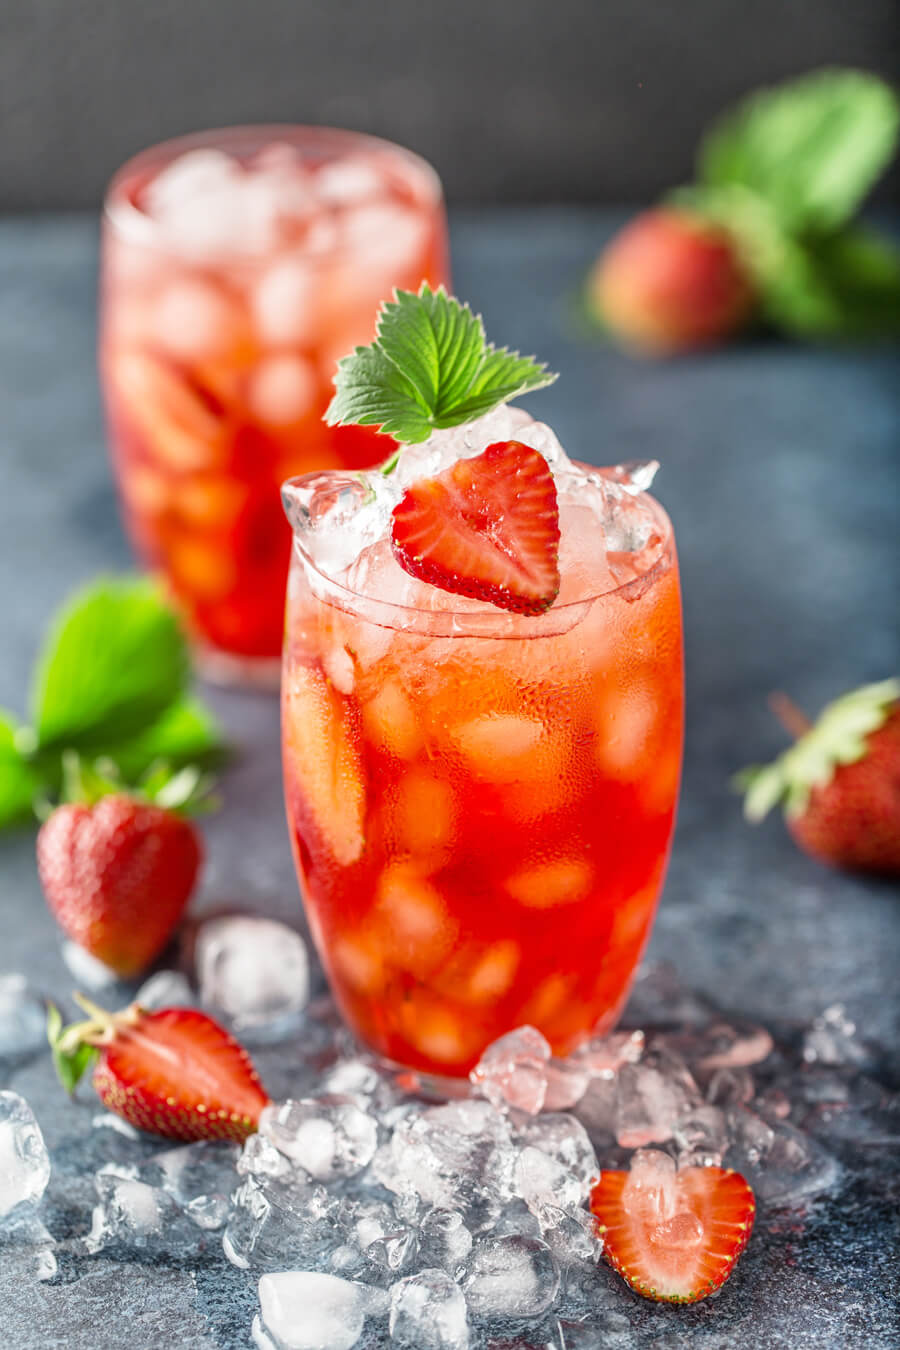 Light and refreshingly sweet with tart strawberries and a hint of mint, these Strawberry Mint Rum Cocktails are the perfect drink for the summer.  #rumcocktails #strawberrycocktails